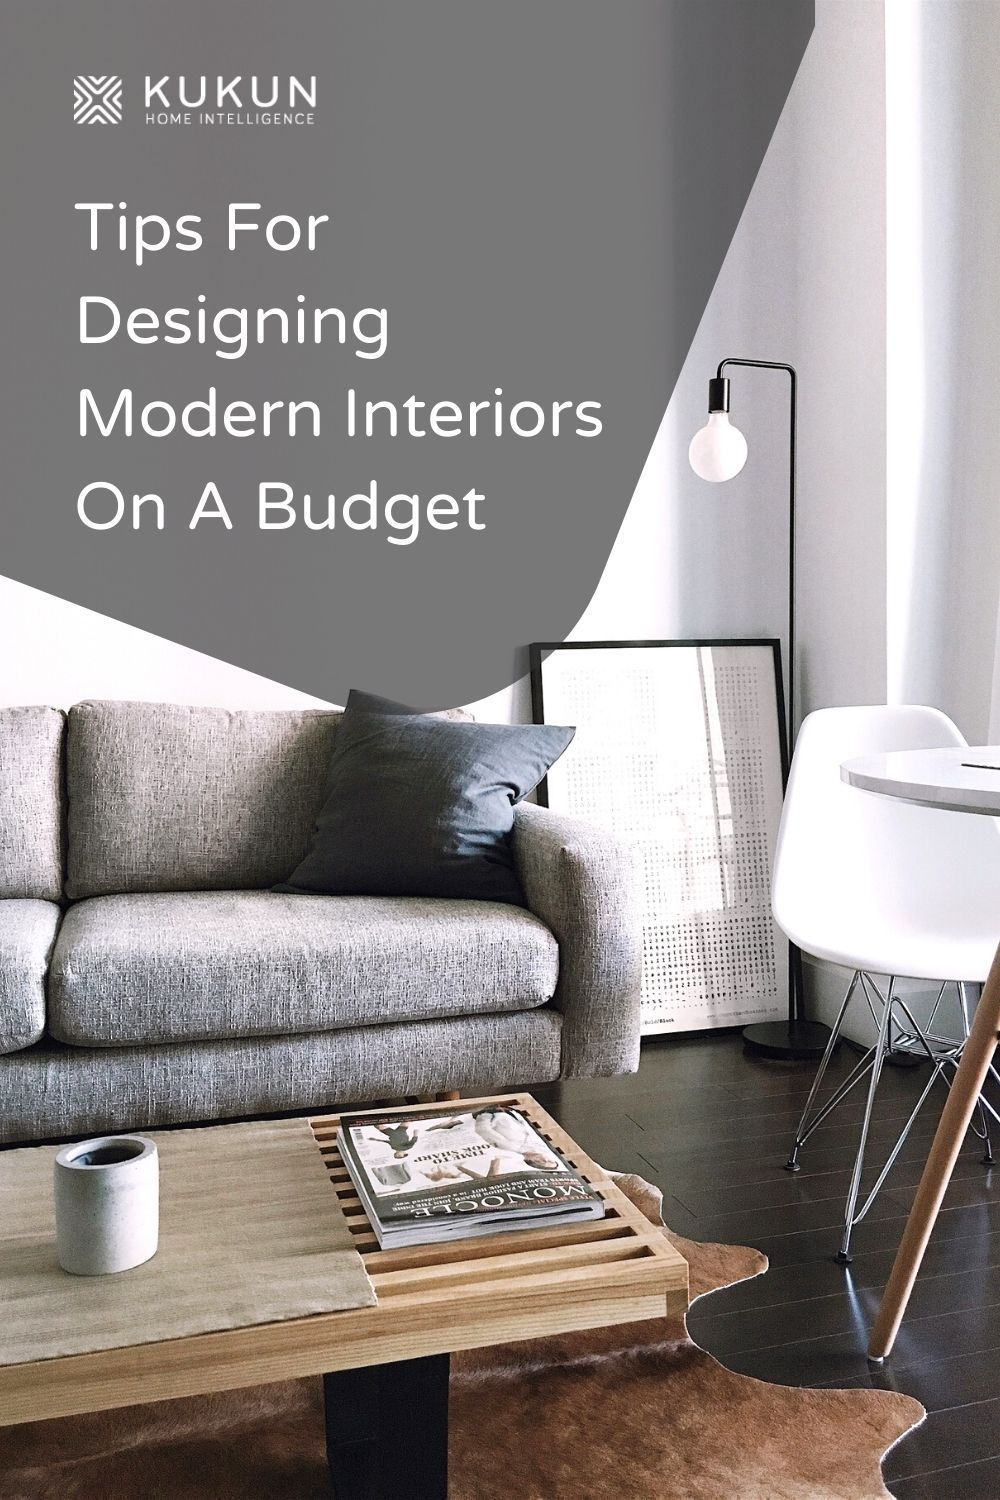 Tips To Design A Home With Modern Interiors Within A Budget